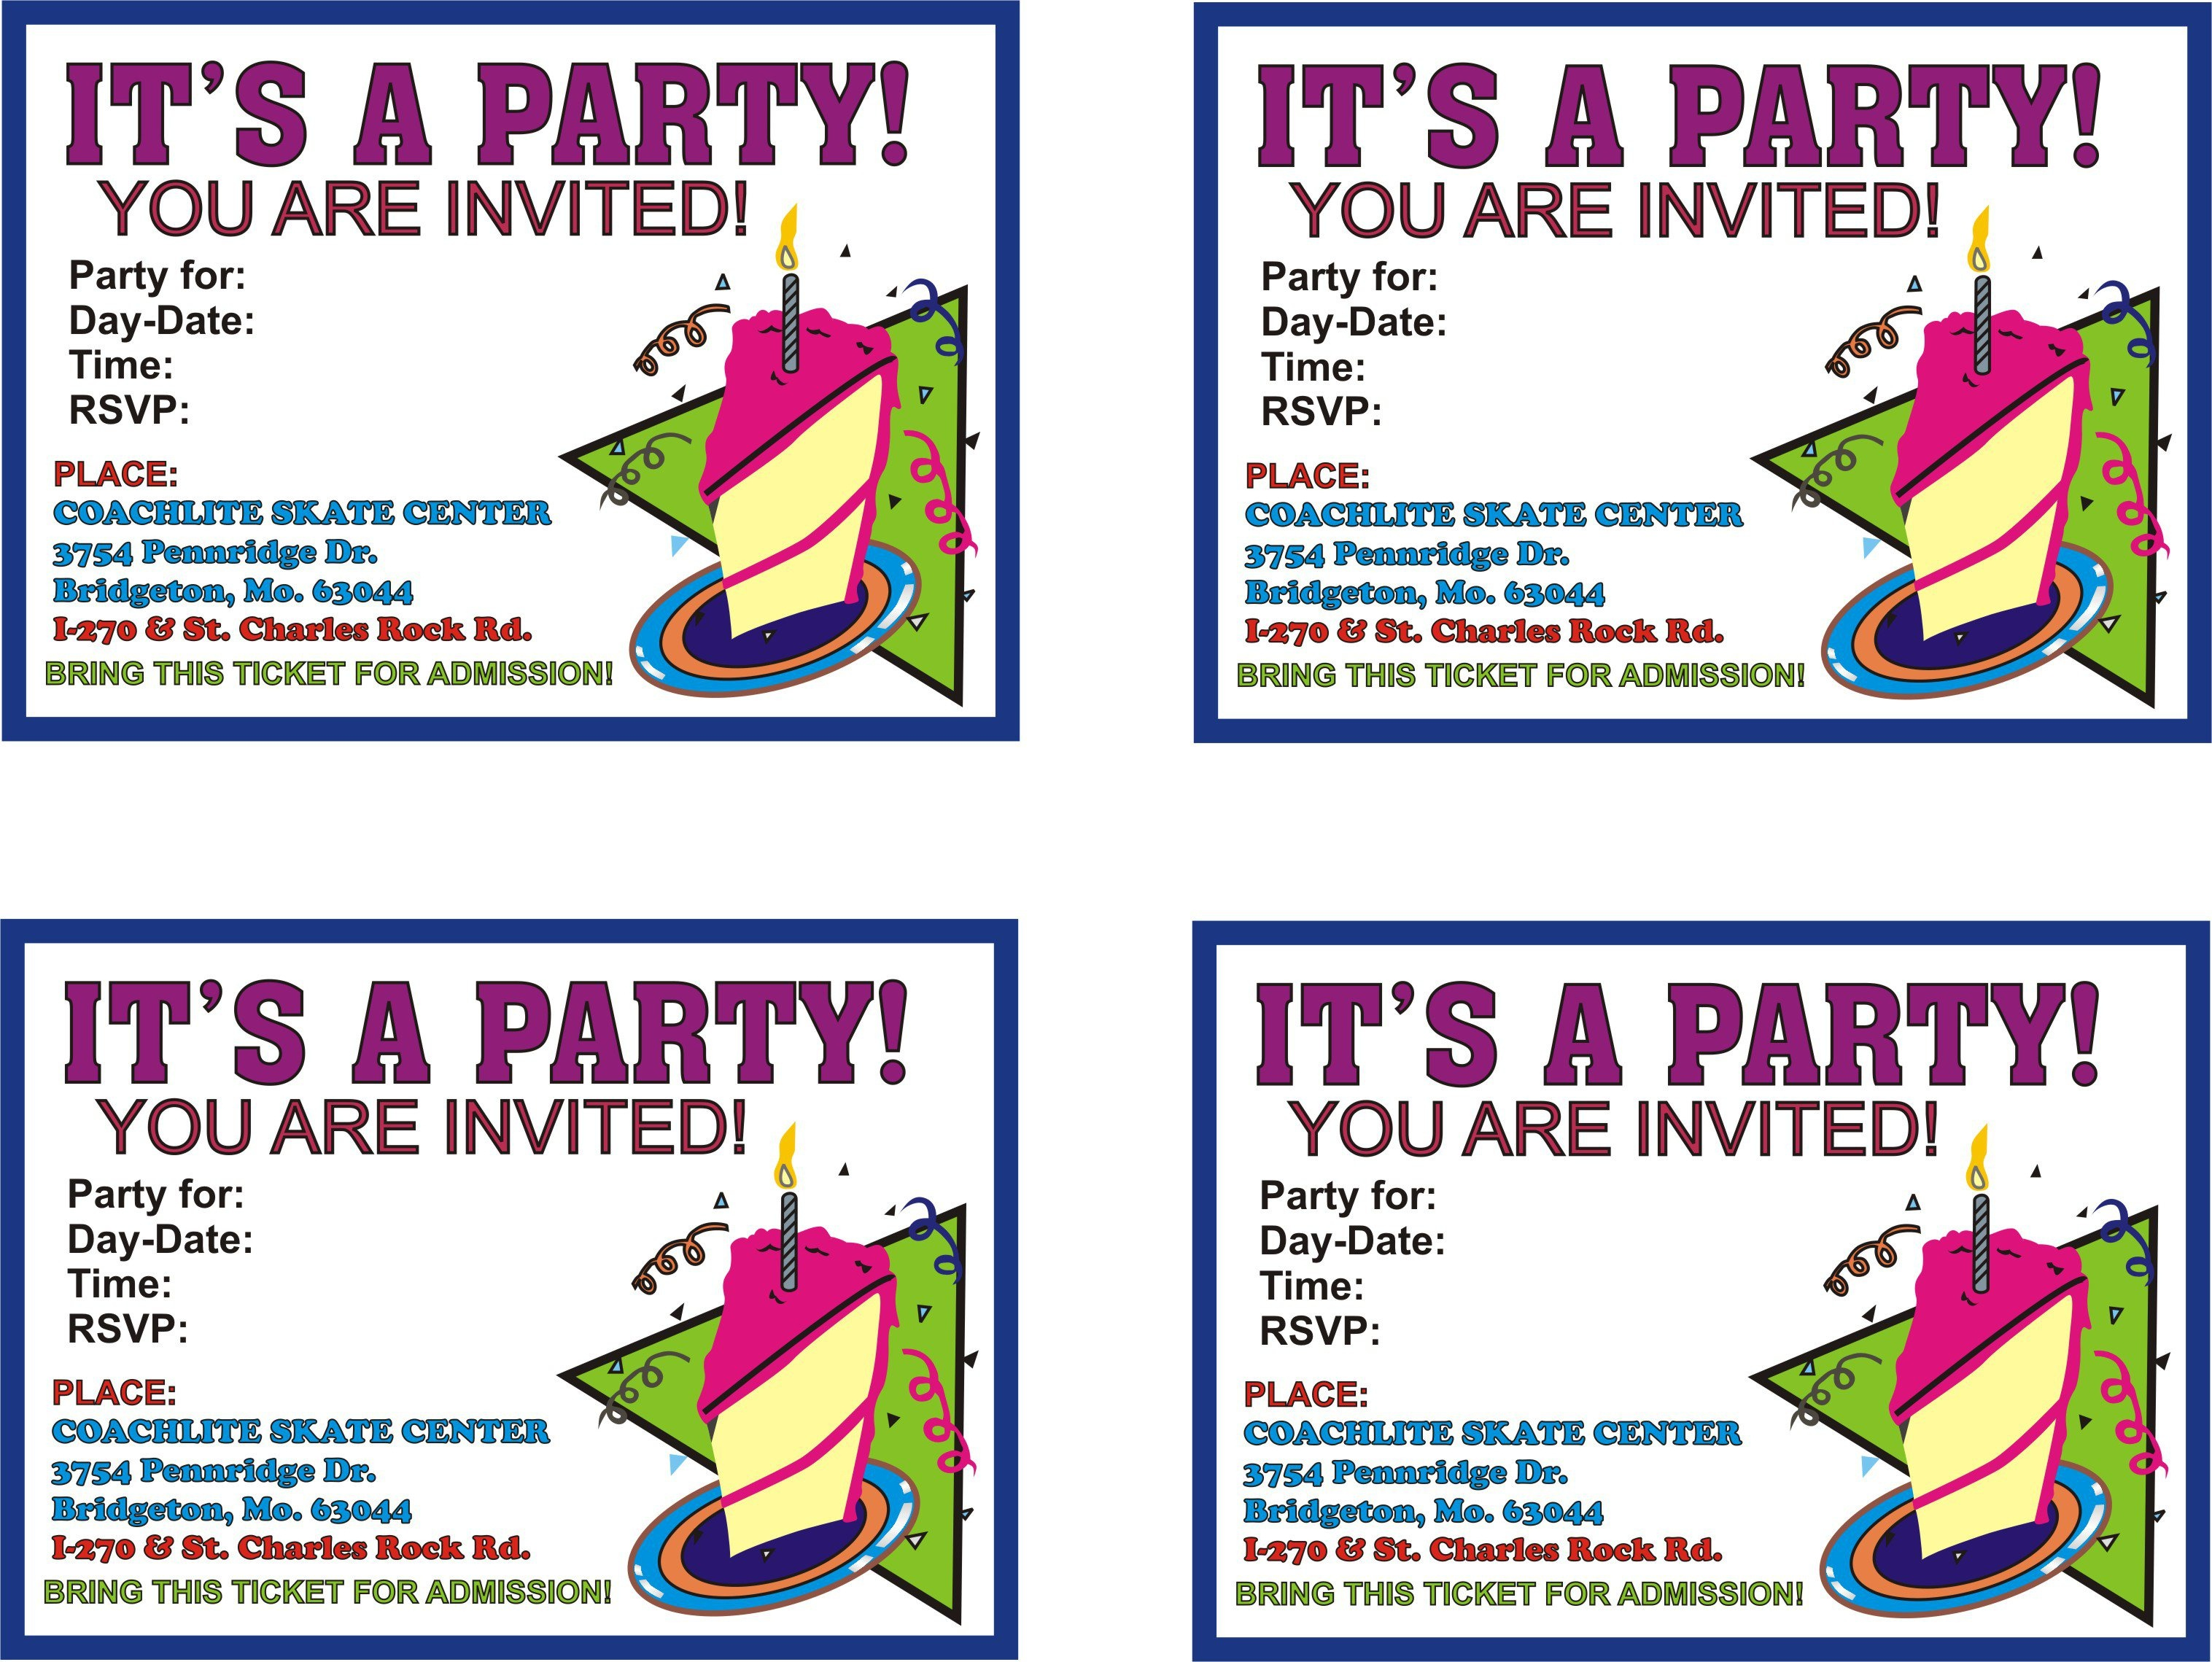 Printed Party Invitations Online - Tutlin.psstech.co - Birthday Party Invitations Online Free Printable